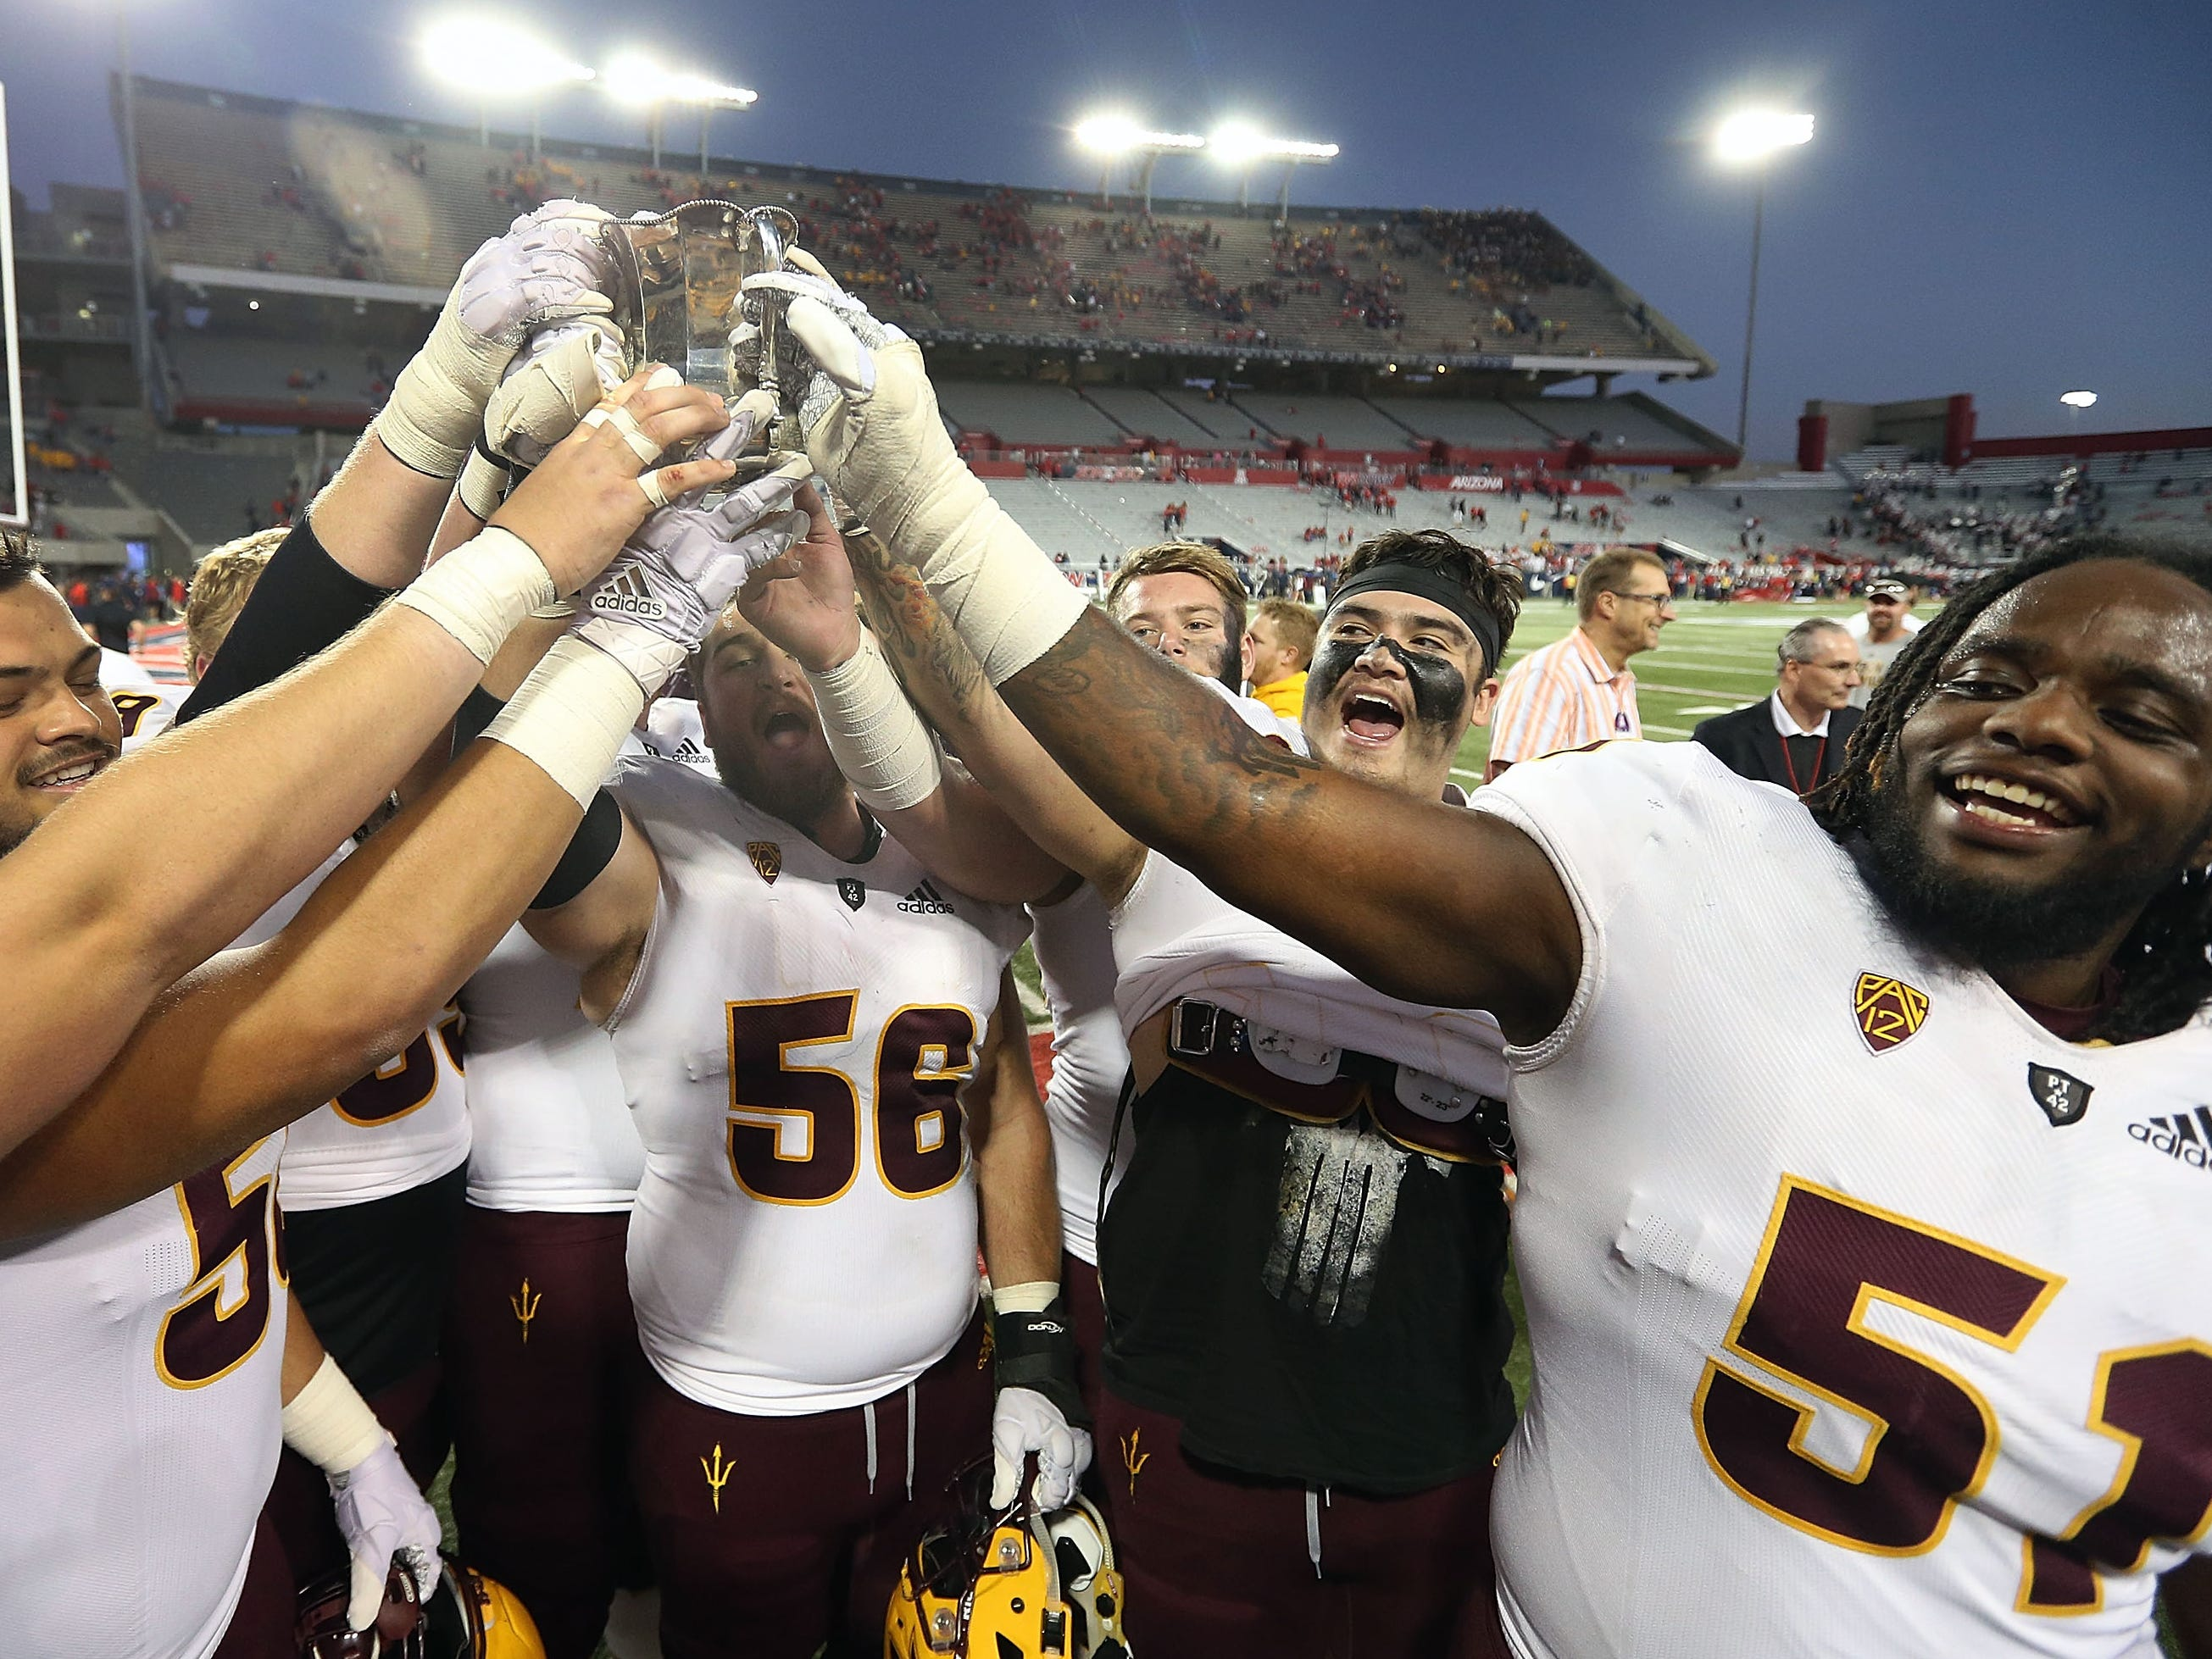 Territorial Cup:  Arizona State players  hold up the Territorial Cup after a 41-40 win over Arizona at Arizona Stadium in Tucson on Nov. 24.